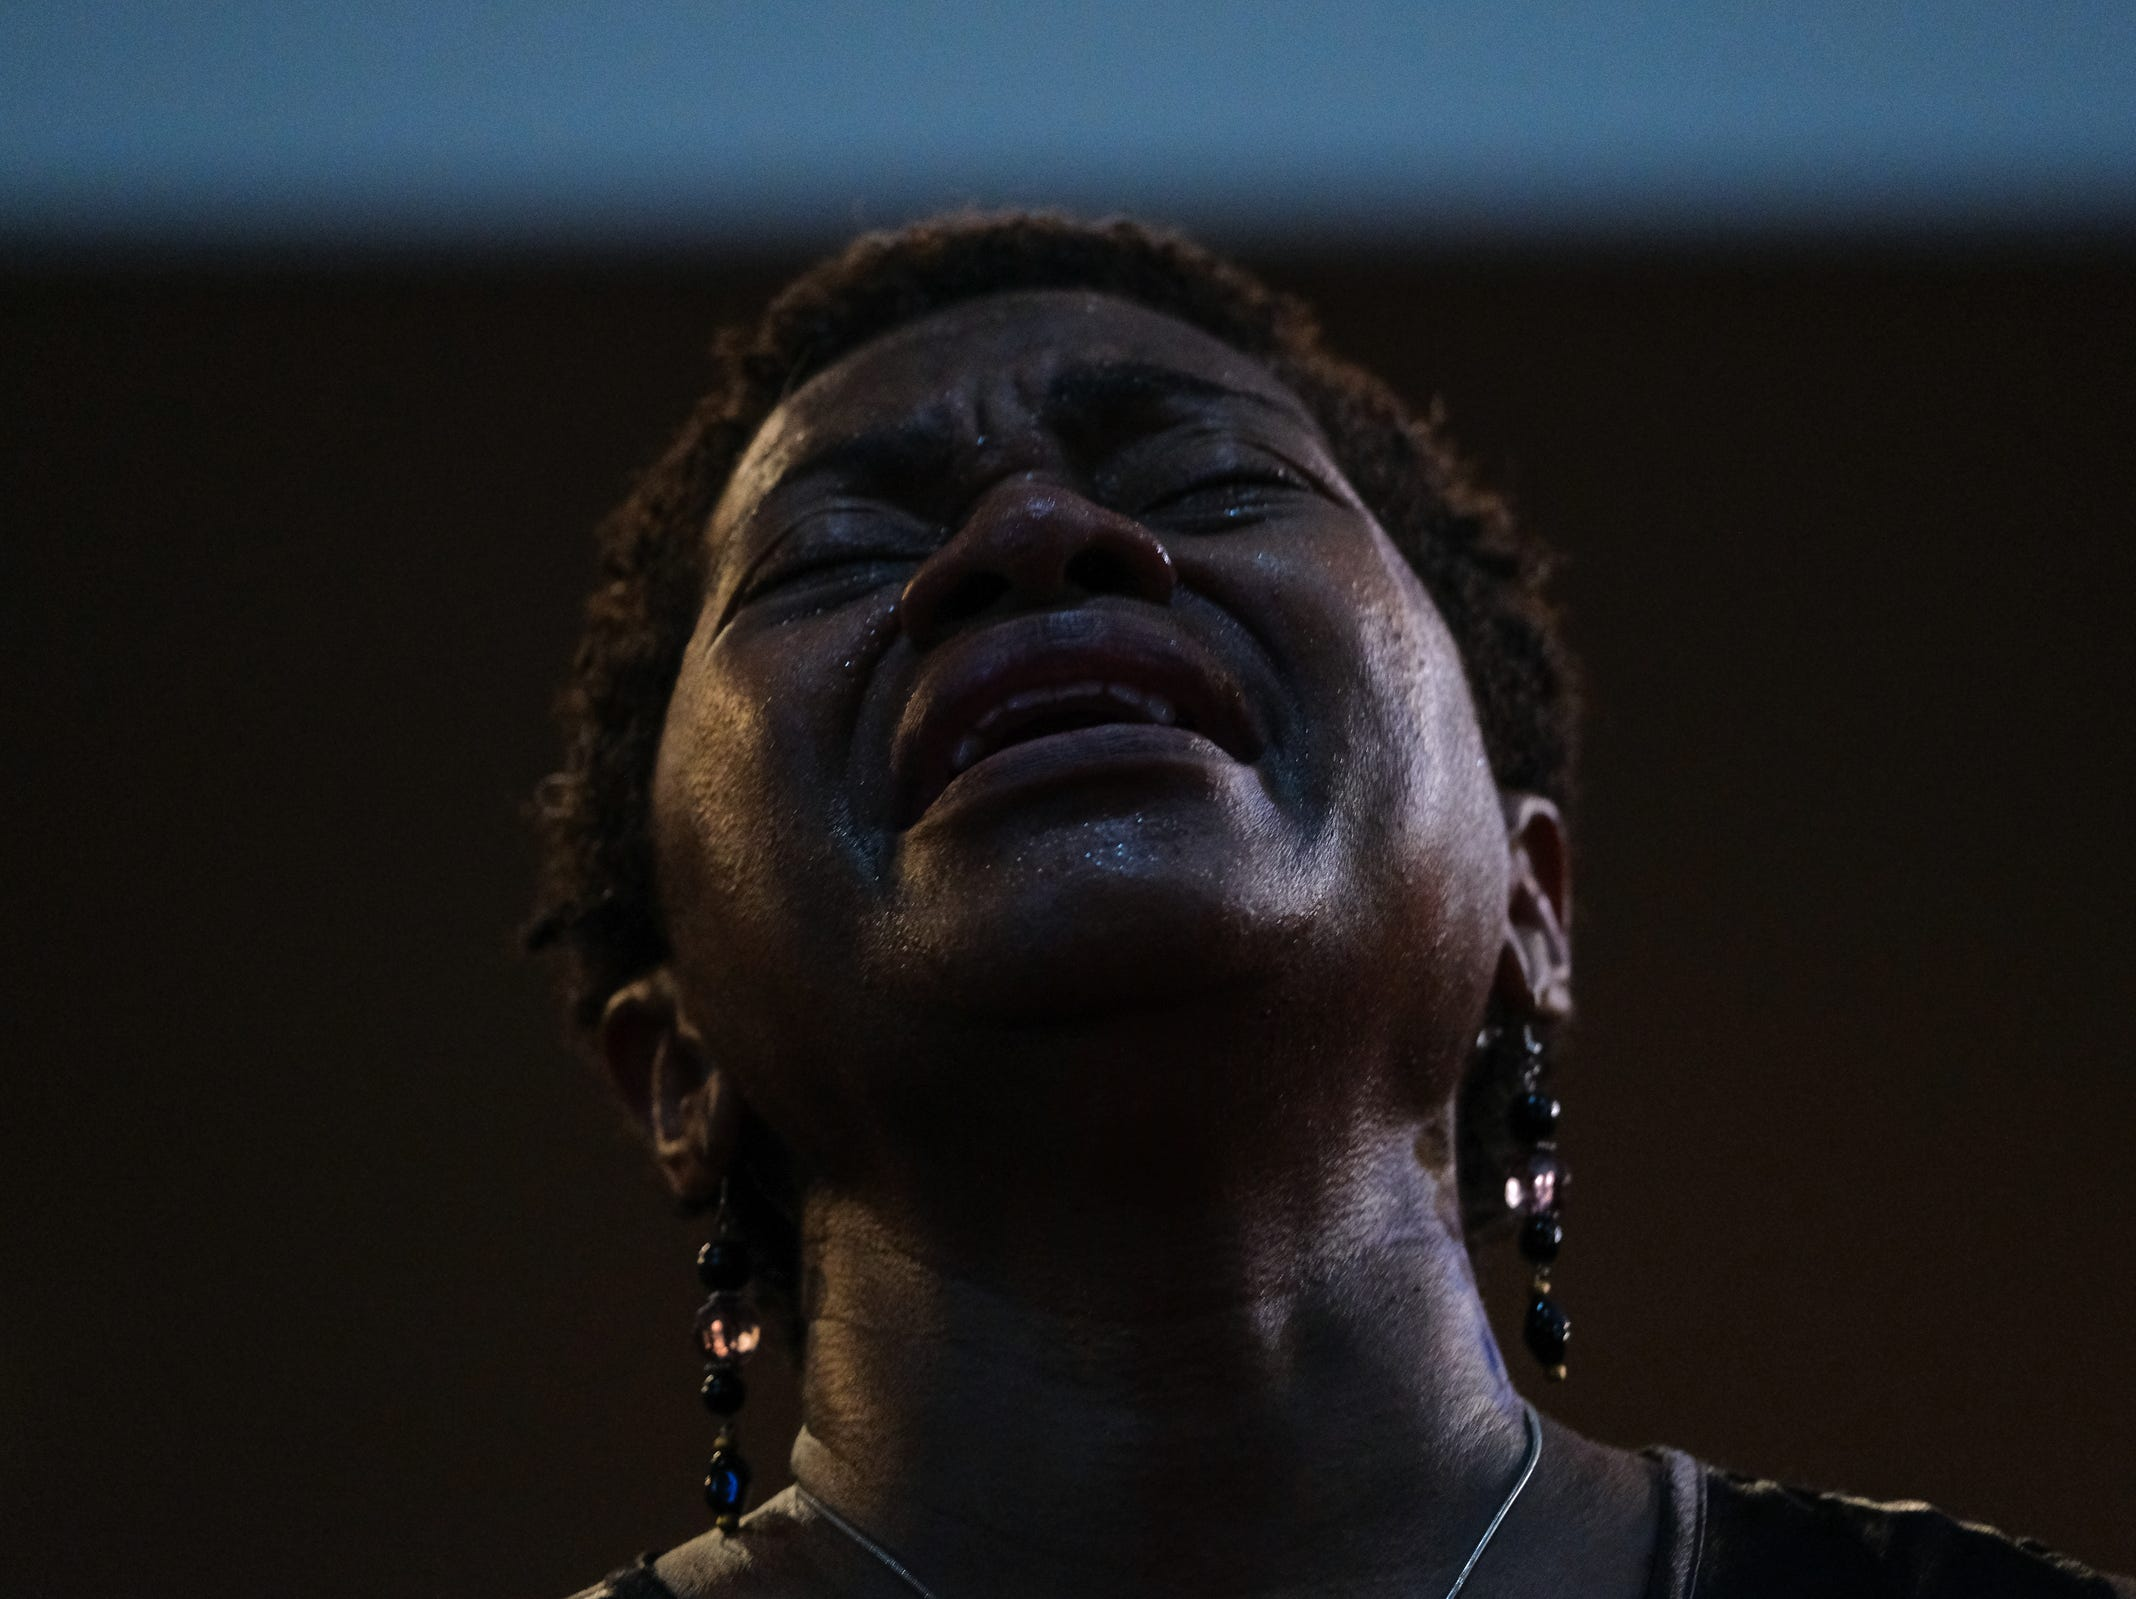 Avis Doughton of Detroit gets emotional as a speaker talks during a gospel tribute concert for the late Aretha Franklin at New Bethel Baptist Church in Detroit on Monday, August 27, 2018.